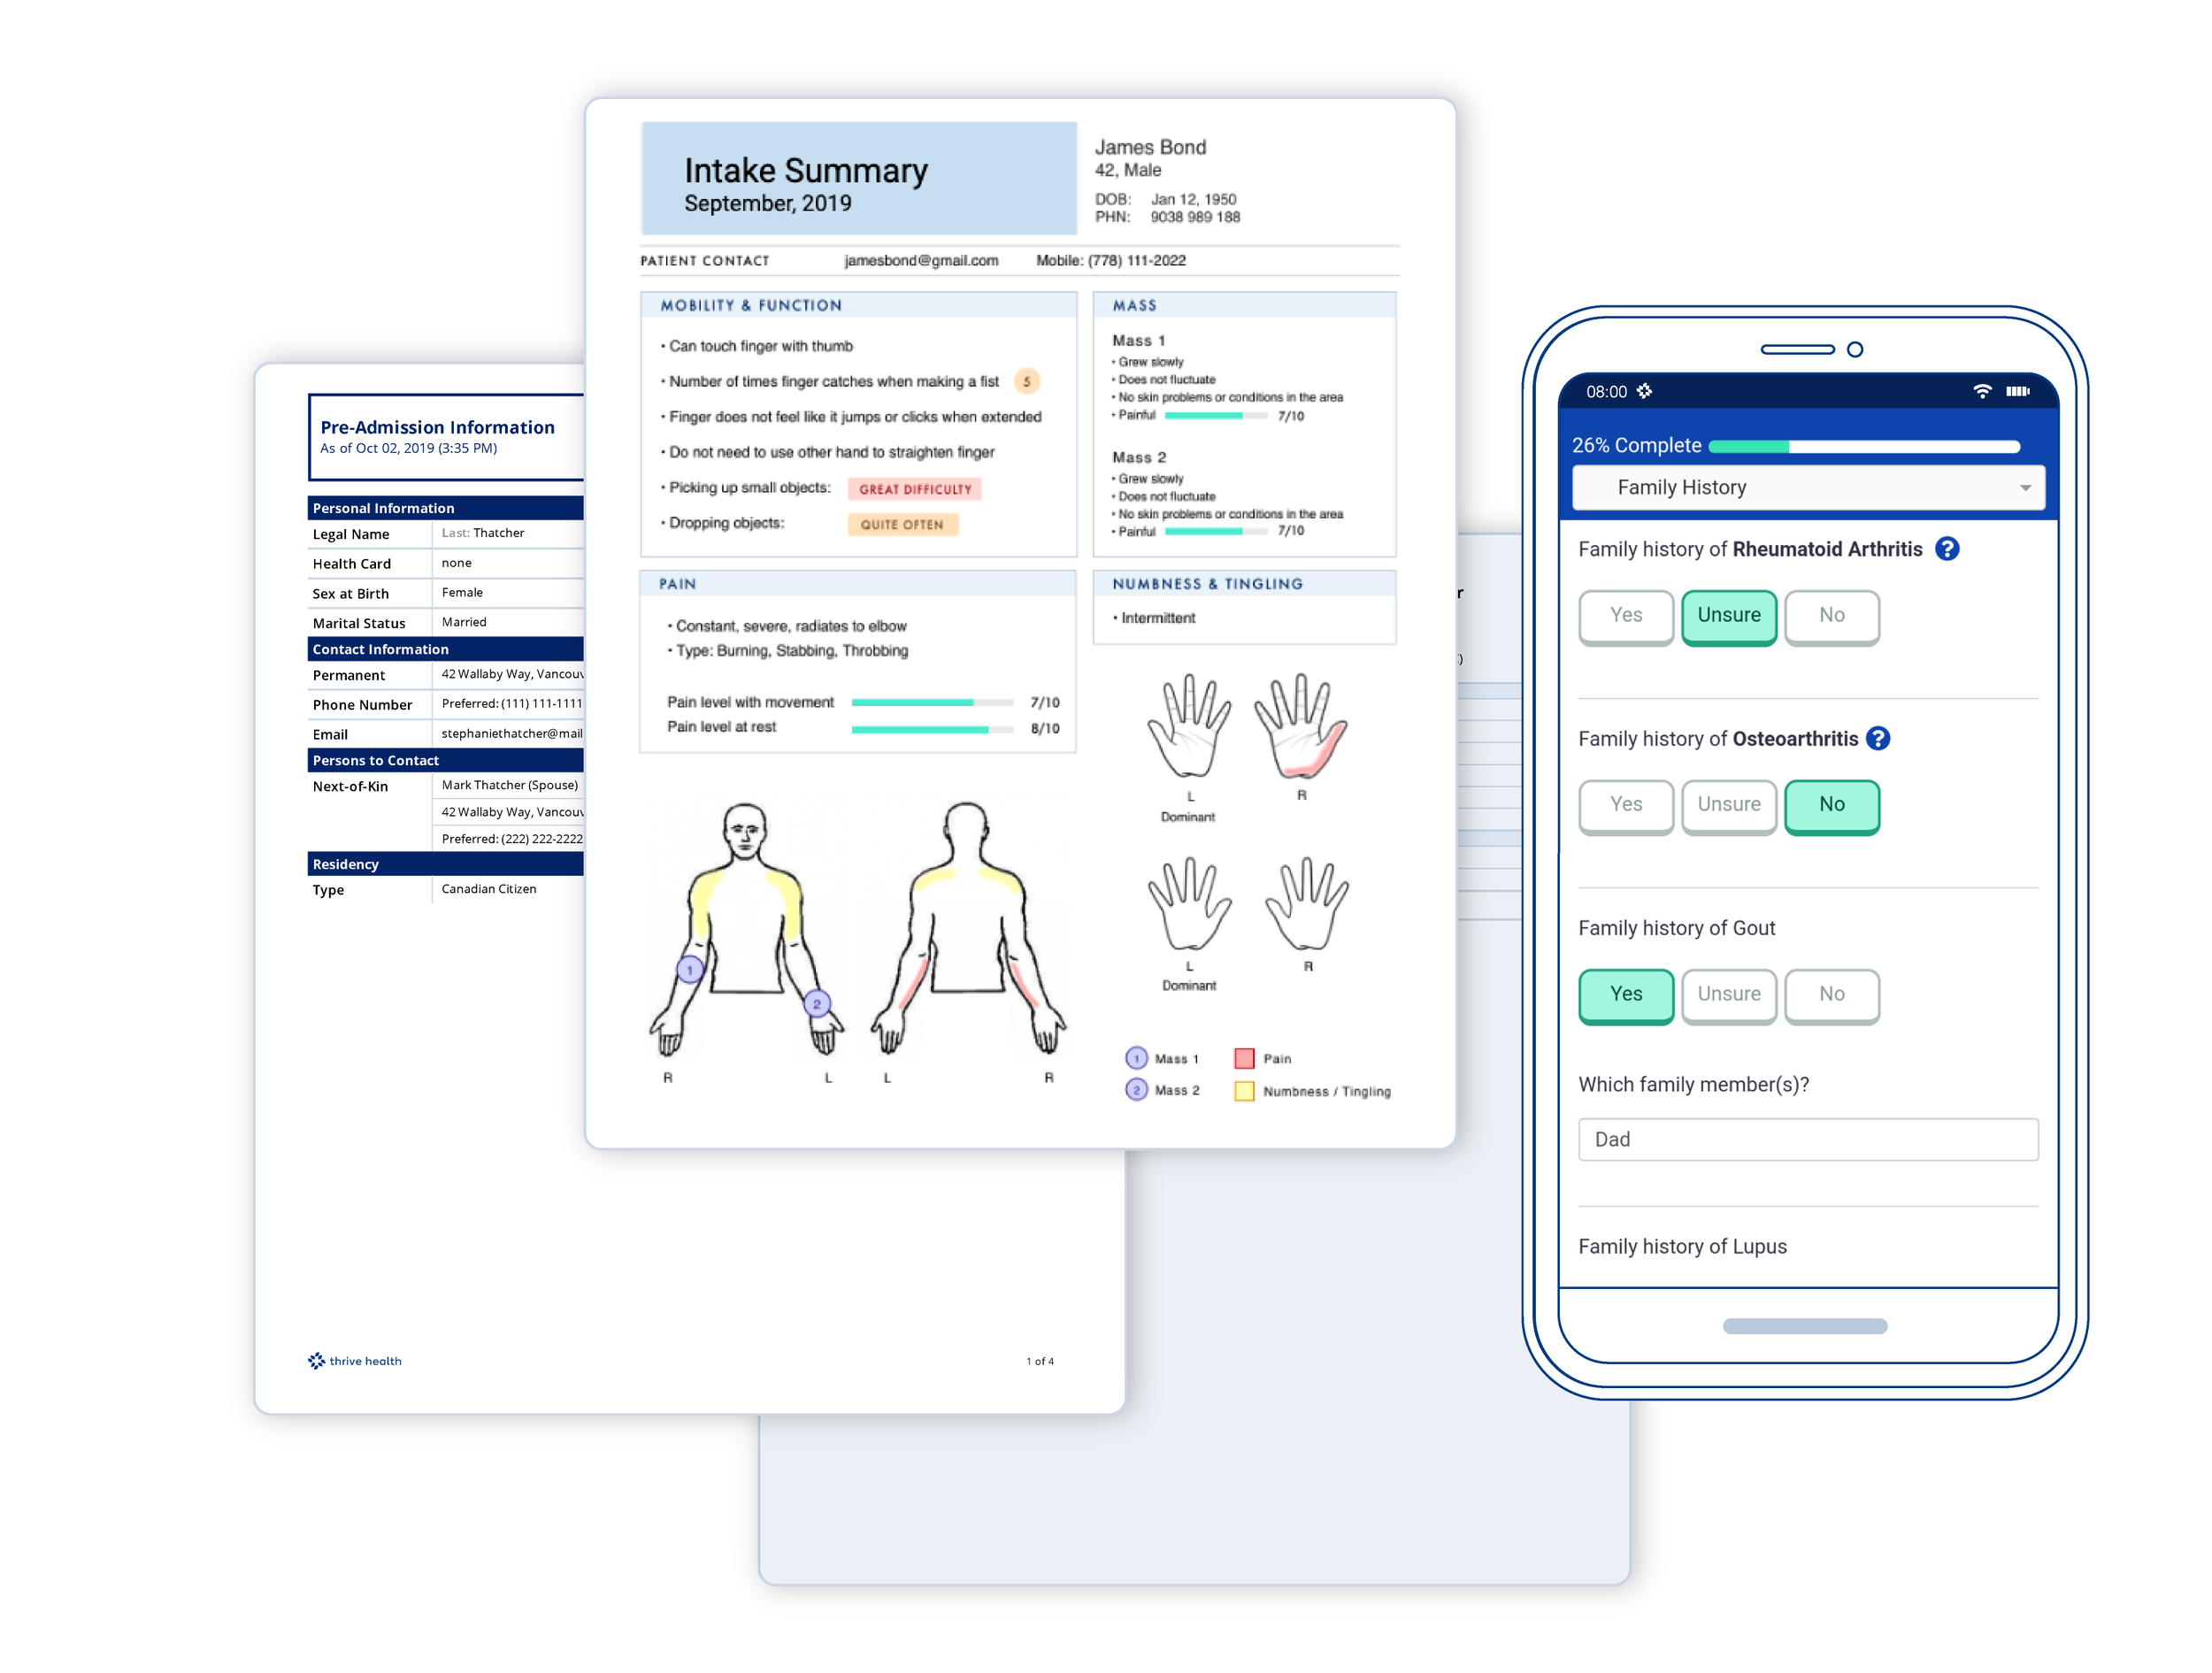 Easy access - Patients see simple, straightforward questionnaires accessible on mobile.You see a clear and concise summary and can manage care efficiently from your worklist.